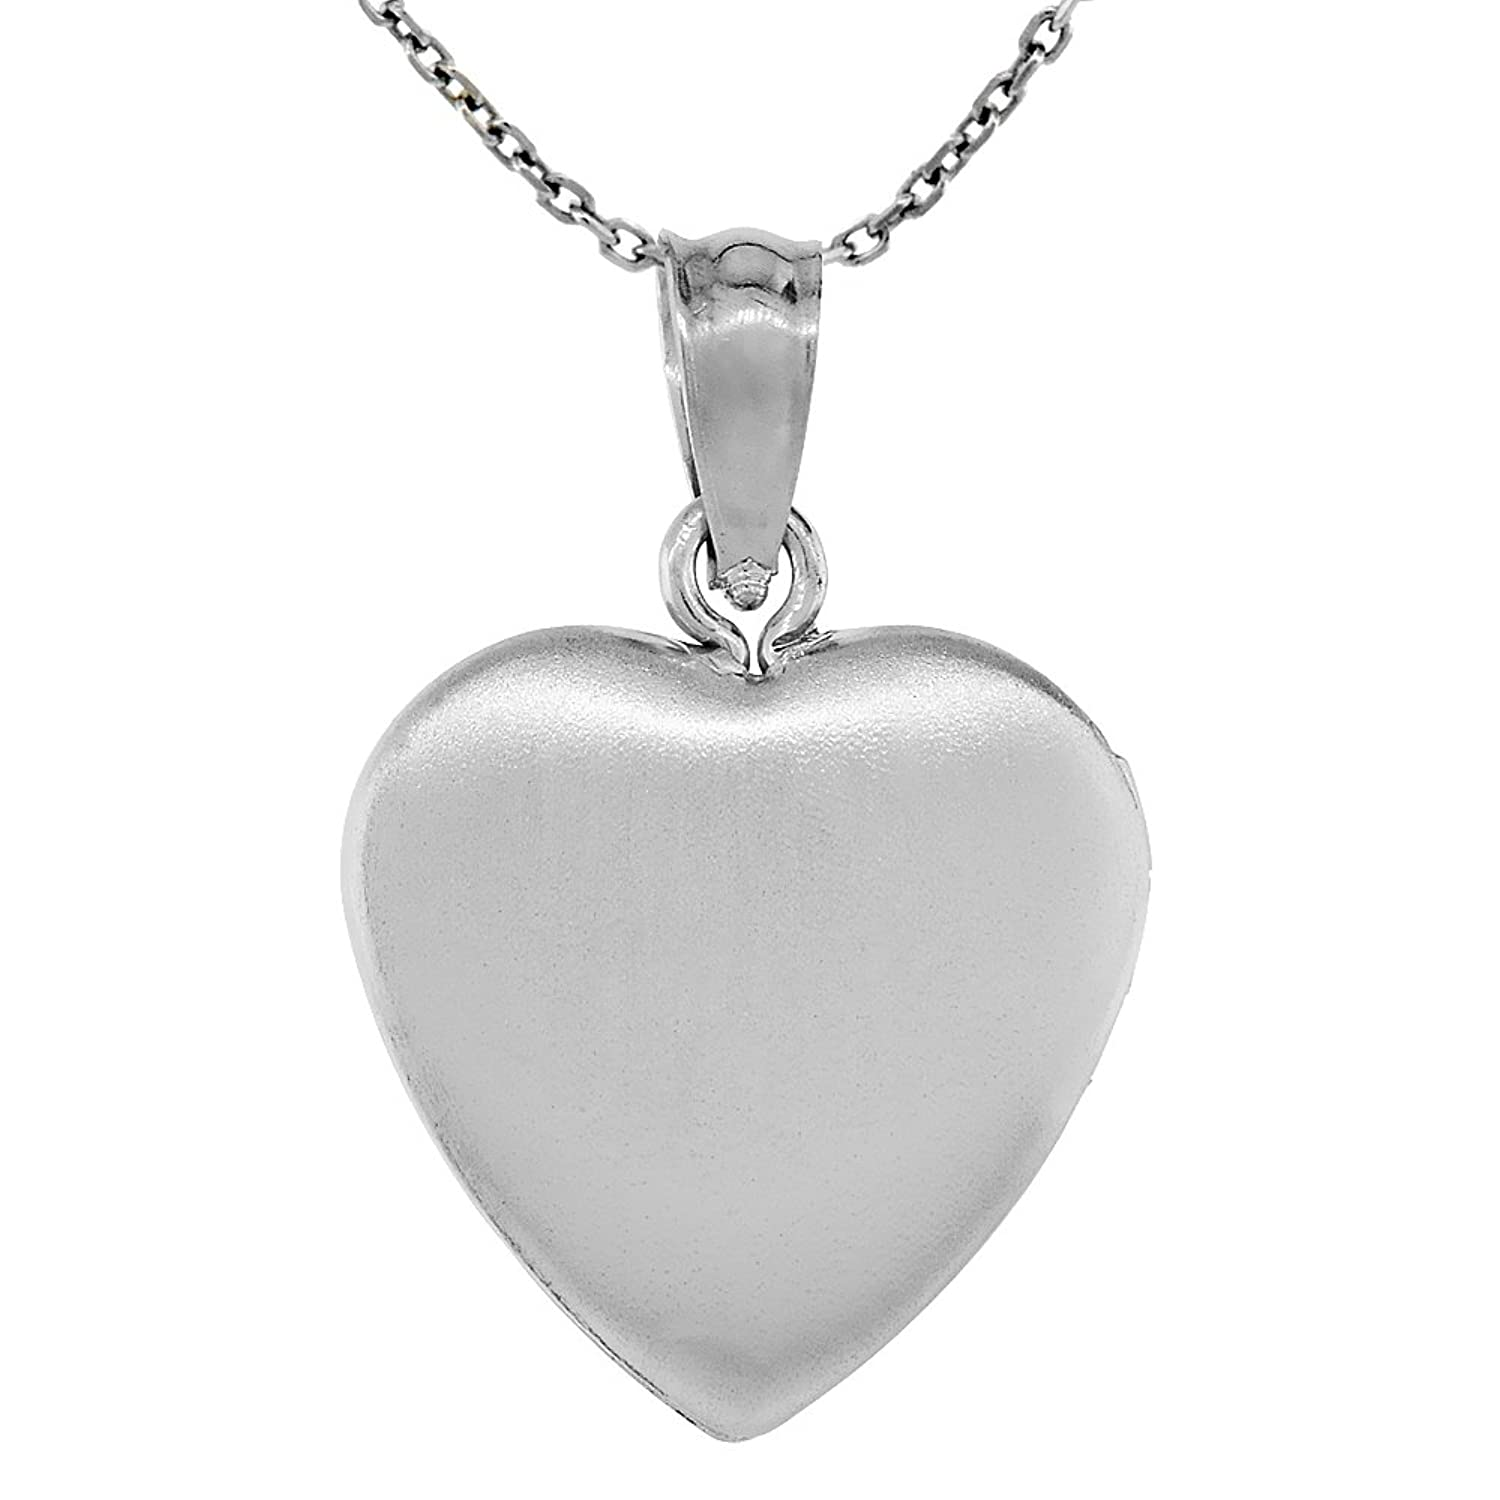 silver filigree half lockets dp heart ornami cm chain with sterling co amazon jewellery uk ladies locket curb